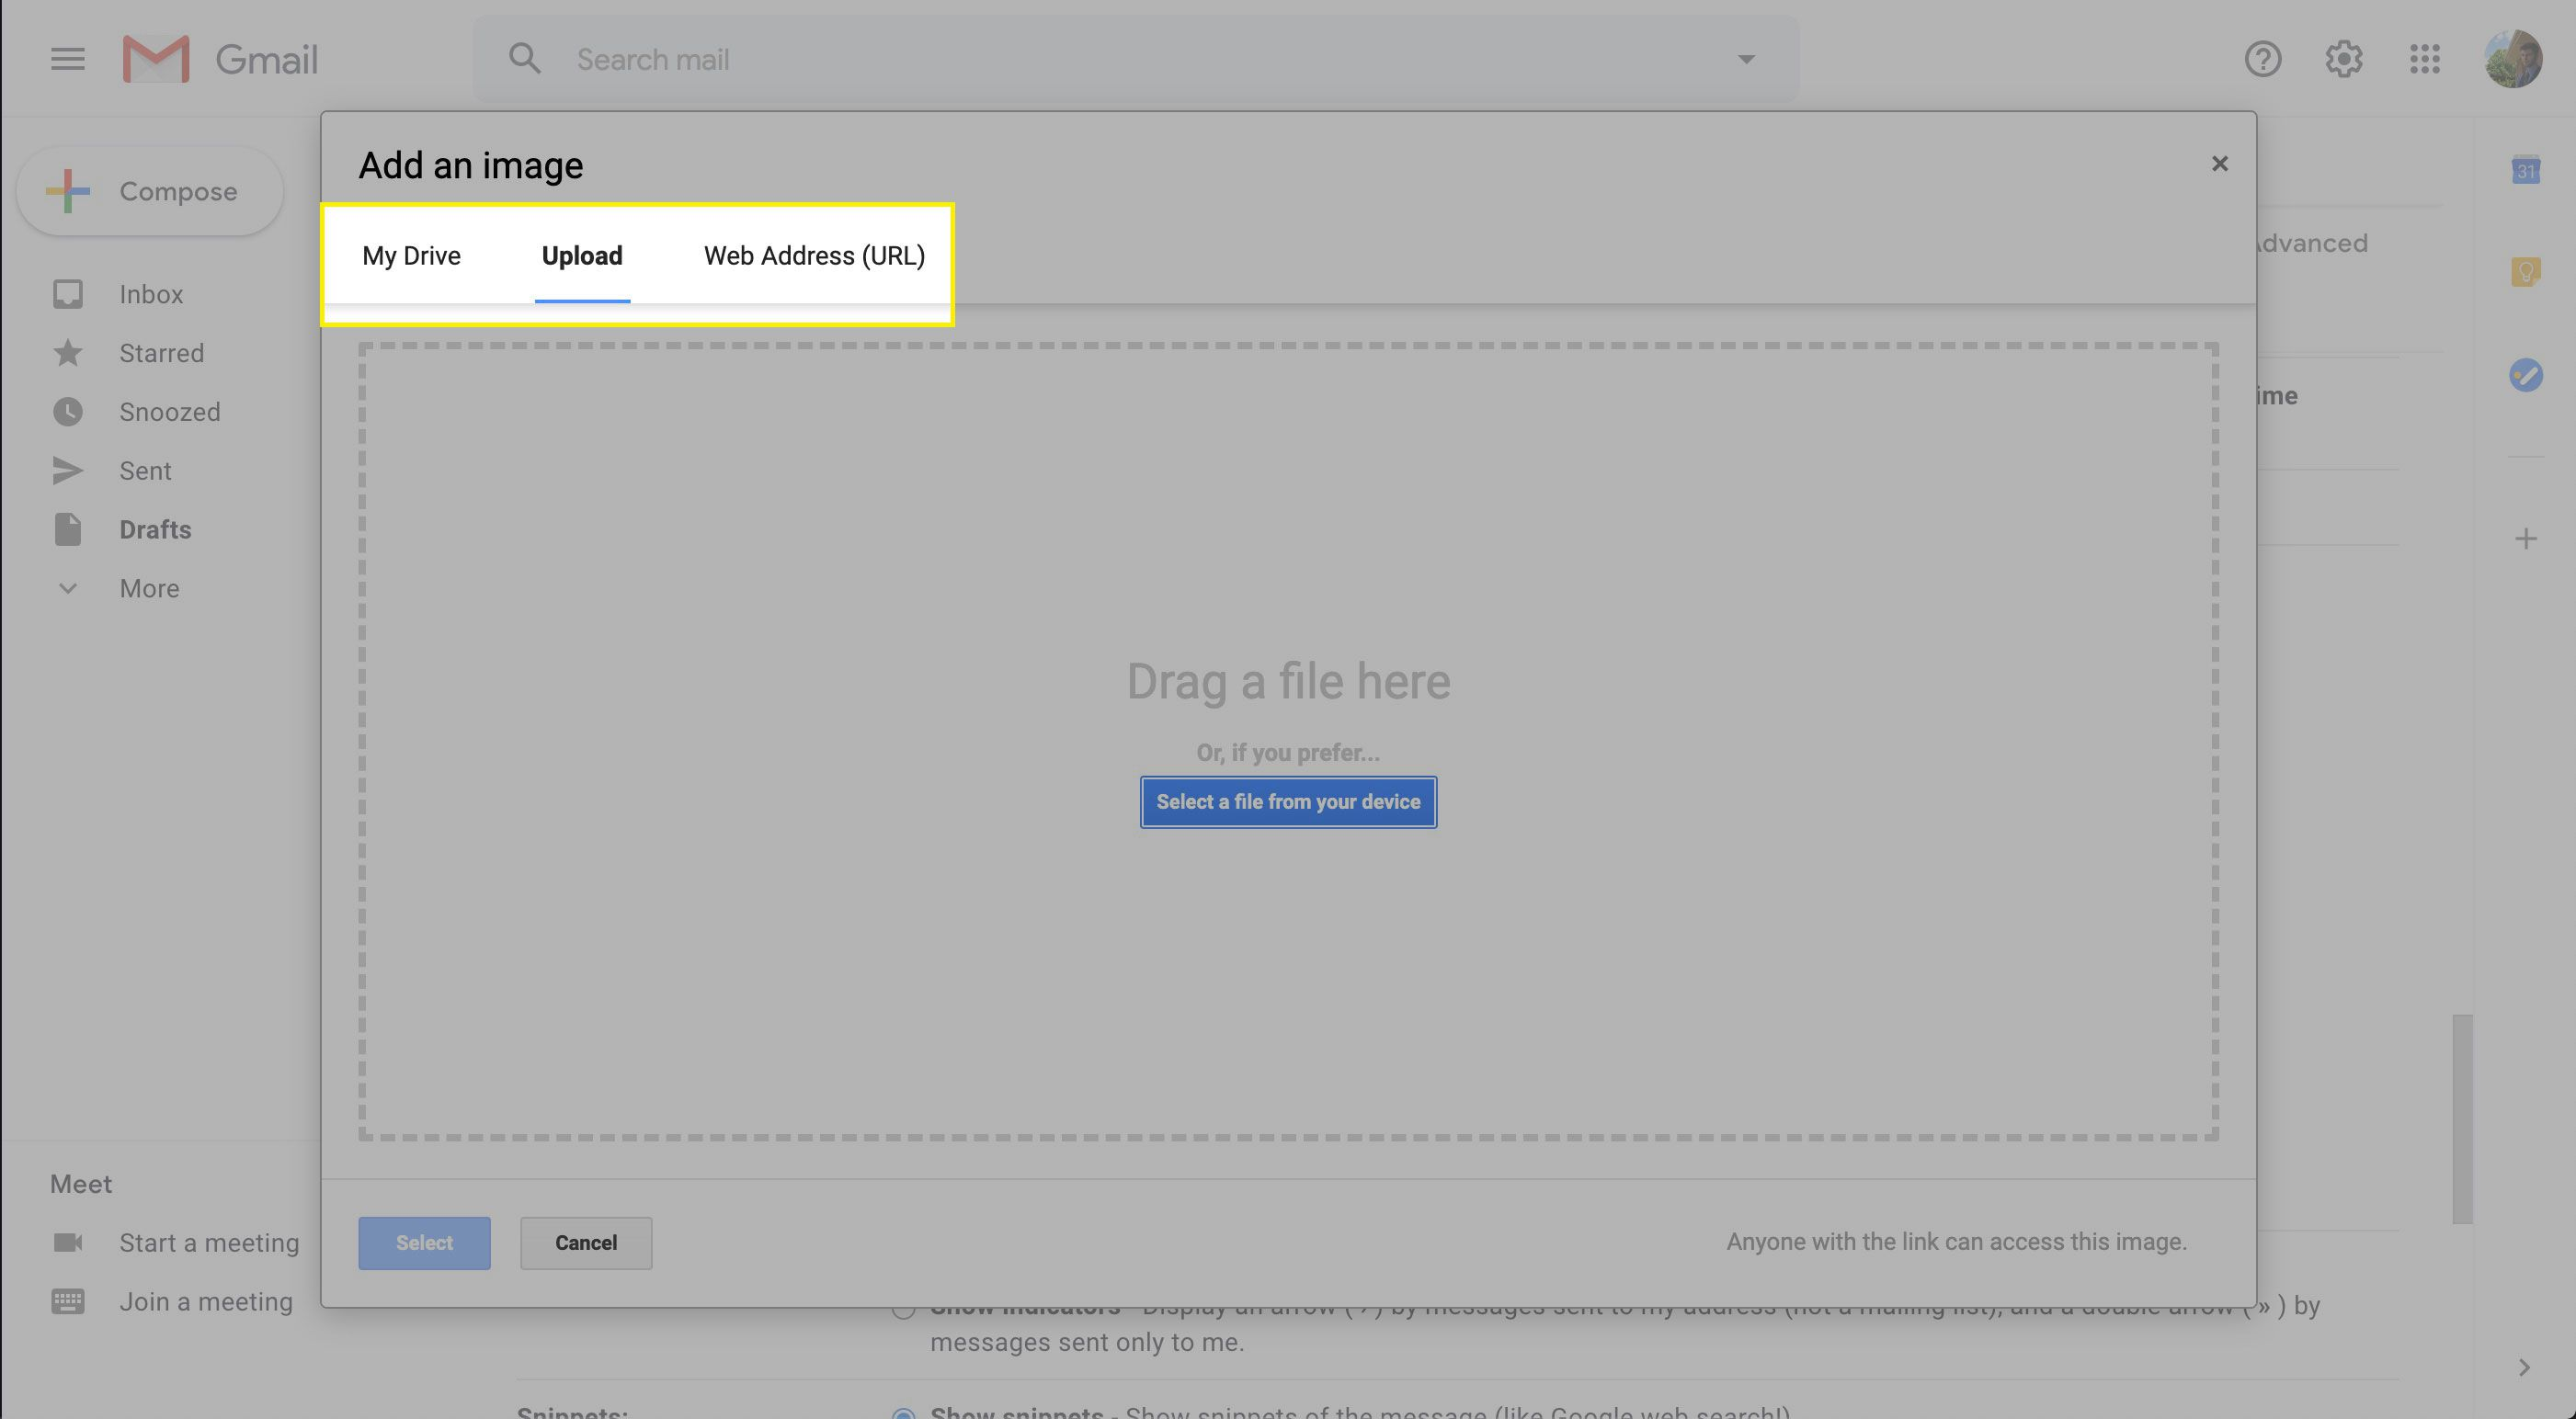 Upload options in the Add an Image window in Gmail